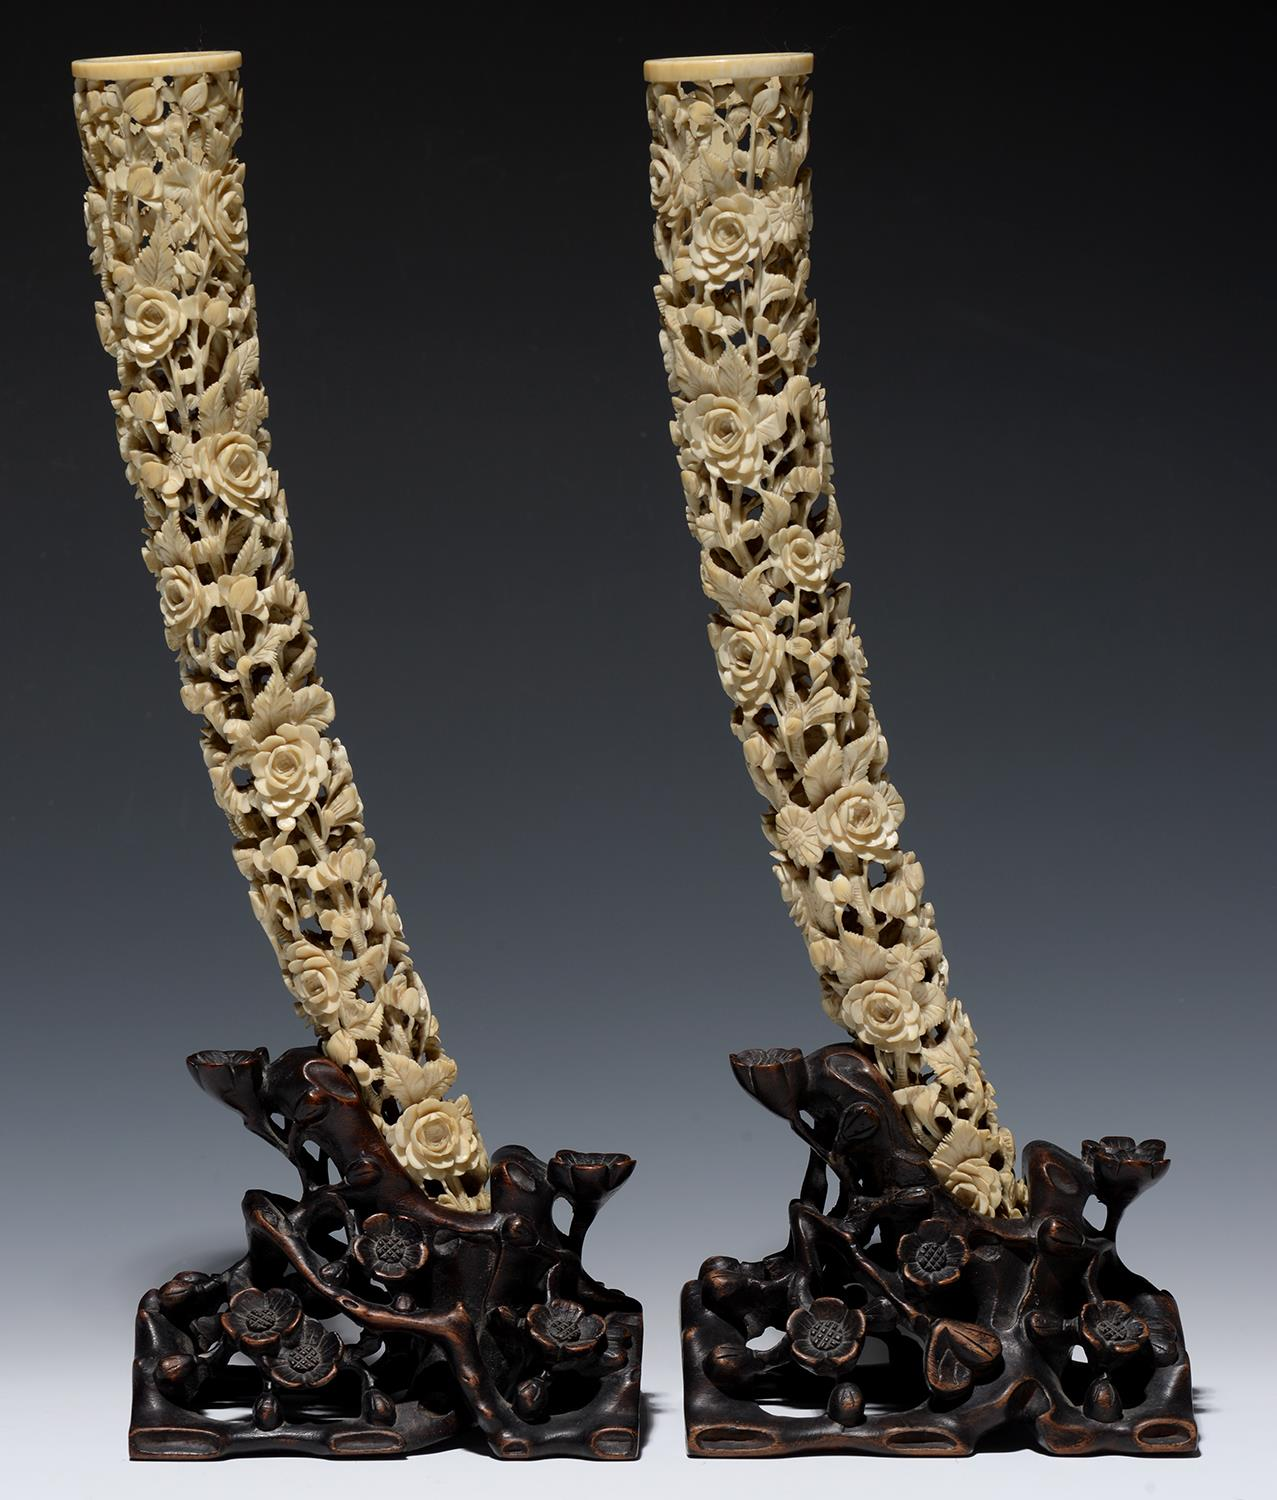 Lot 284 - A PAIR OF CHINESE PIERCED IVORY TUSK CARVINGS ON CONTEMPORARY OPENWORK HARDWOOD STANDS, CARVED AS